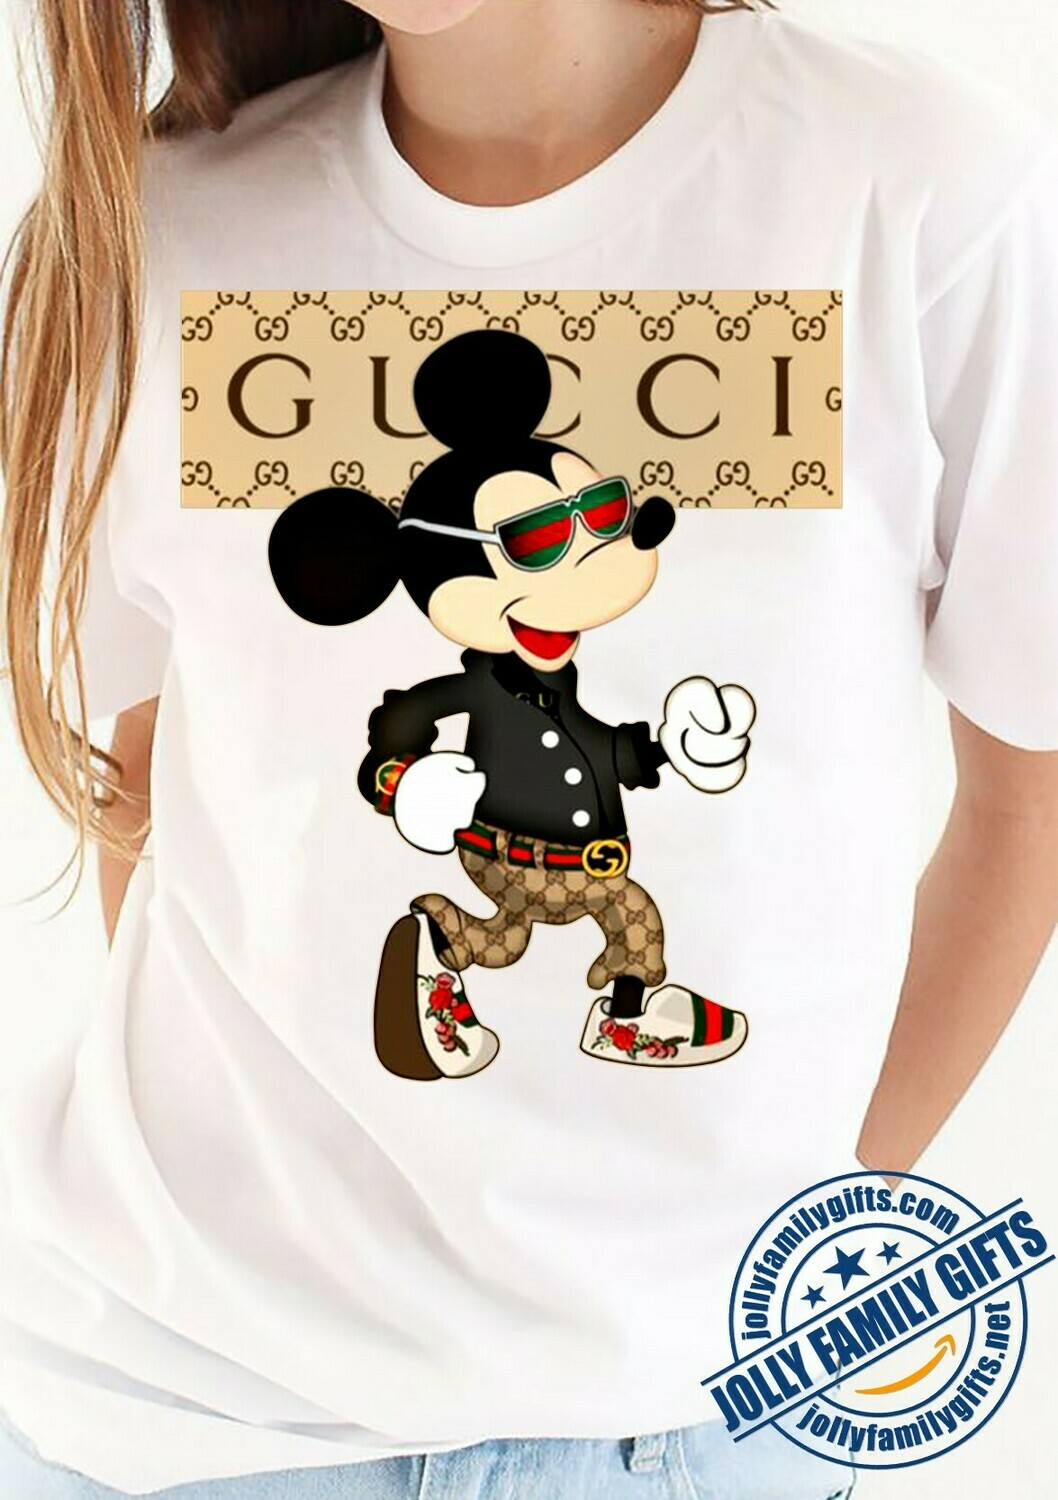 Gucci Mickey Mouse Valentine's Men,Mouse Walking Disney Stylish ,Let's Go to Disney World Family Friends Team Party  Unisex T-Shirt Hoodie Sweatshirt Sweater for Ladies Women Men Kids Youth Gifts